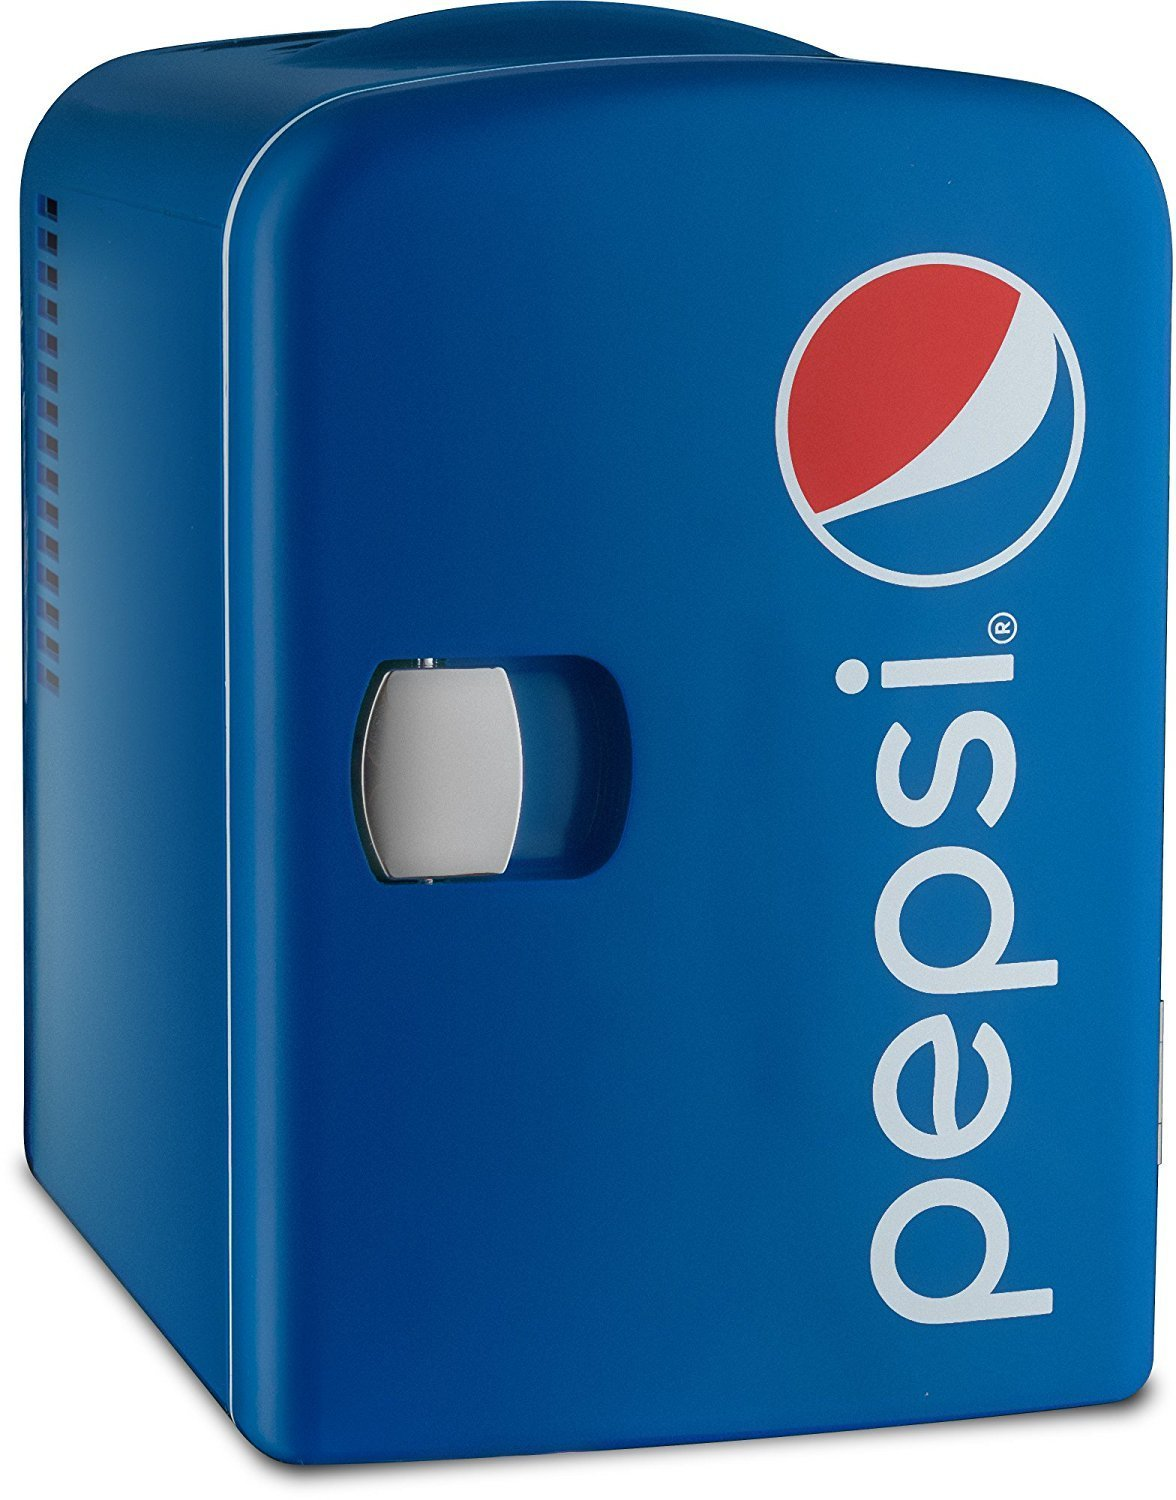 Pepsi GMF660 Portable 6 Can Mini Fridge Cooler and Warmer for Home, Office, Car or Boat AC & DC - Blue - 110V